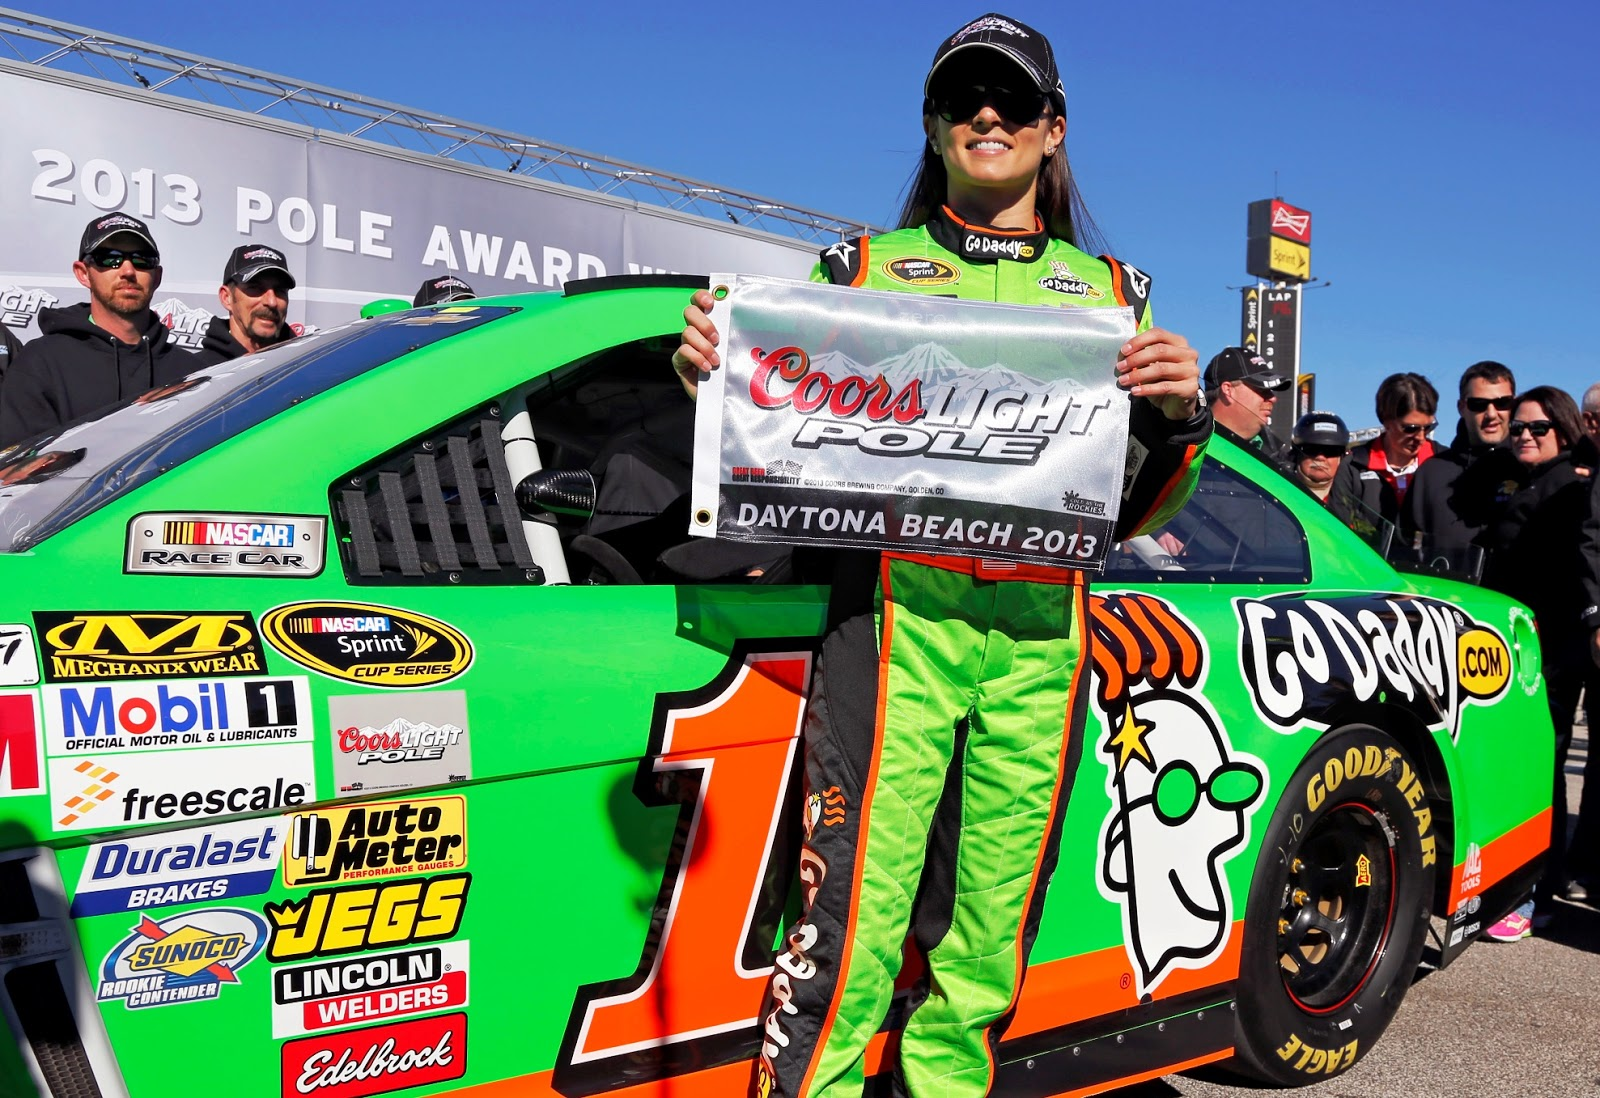 11 pole position danica patrick - dirty sports terms sexual innuendo